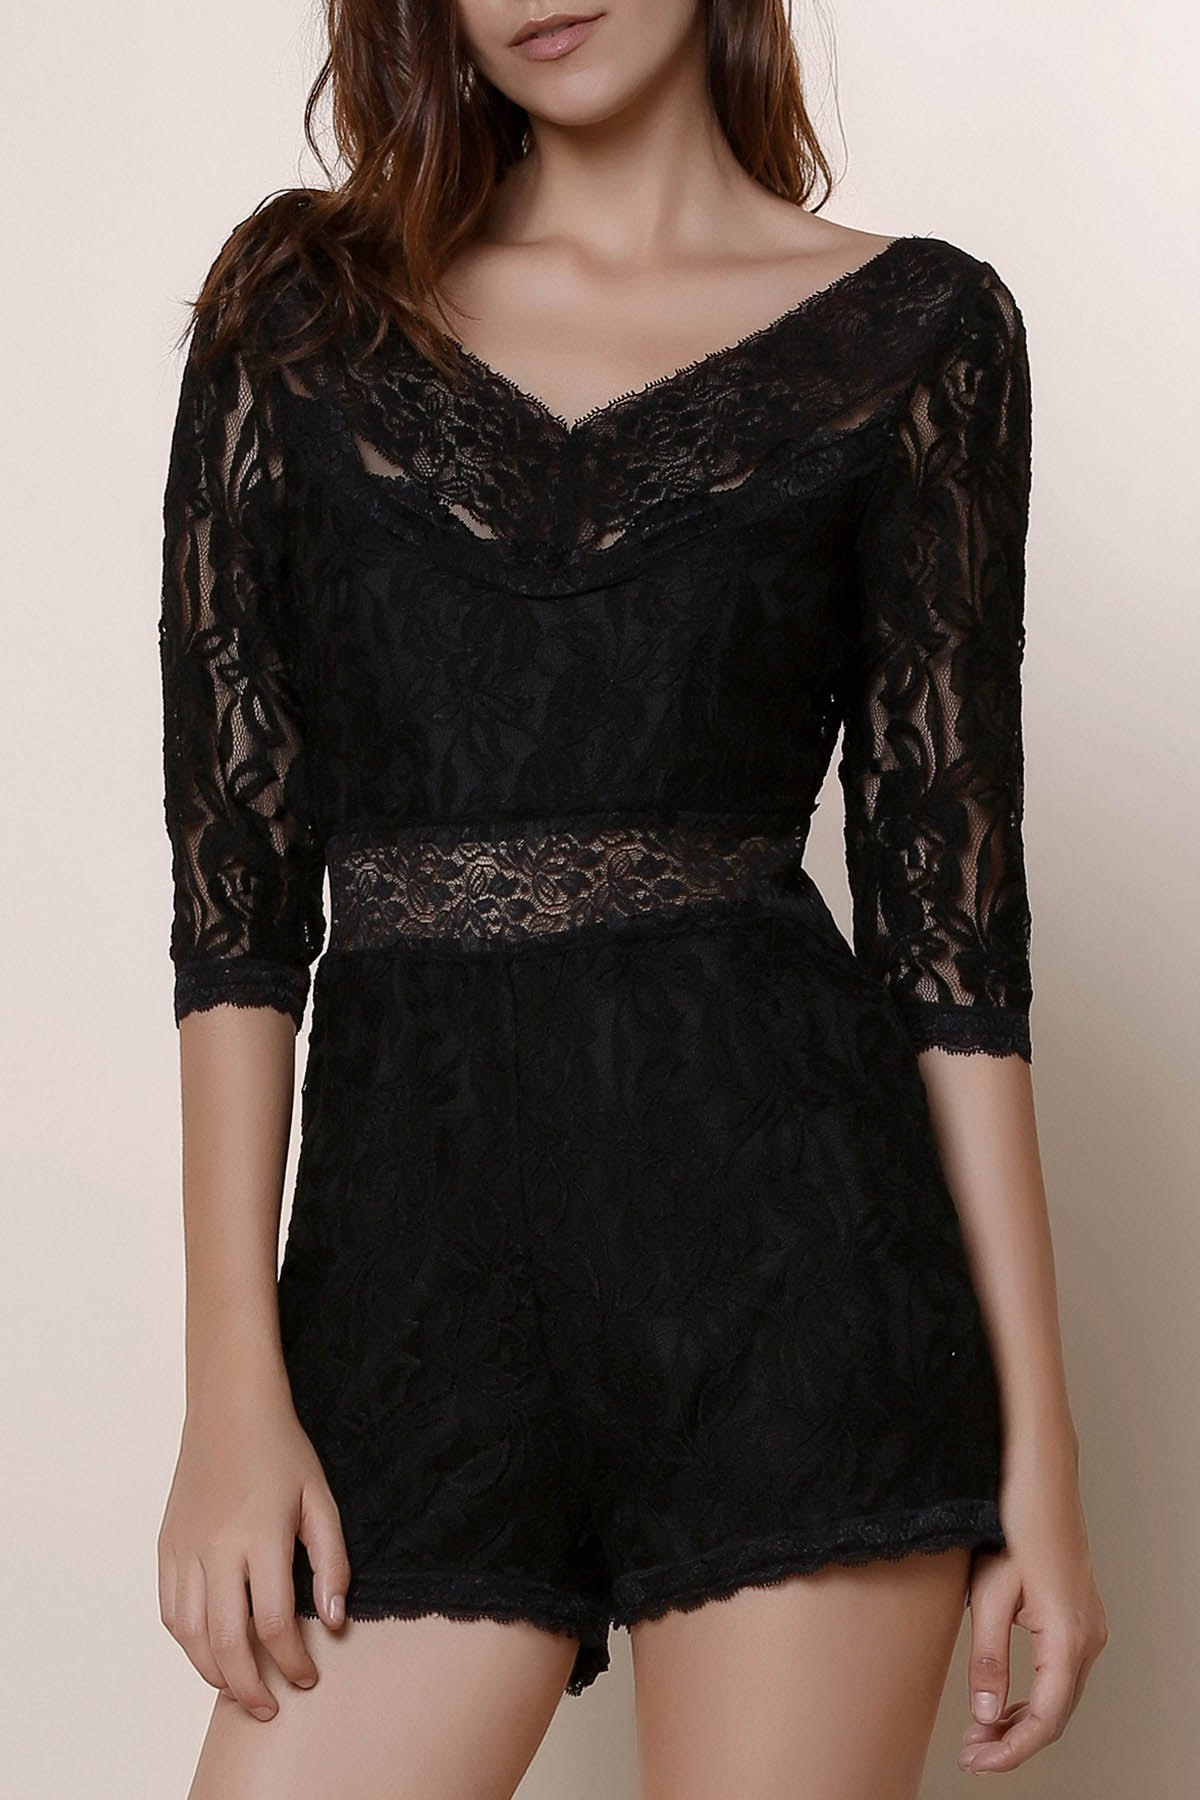 Trendy Women's V-Neck 3/4 Sleeve See-Through Lace Romper